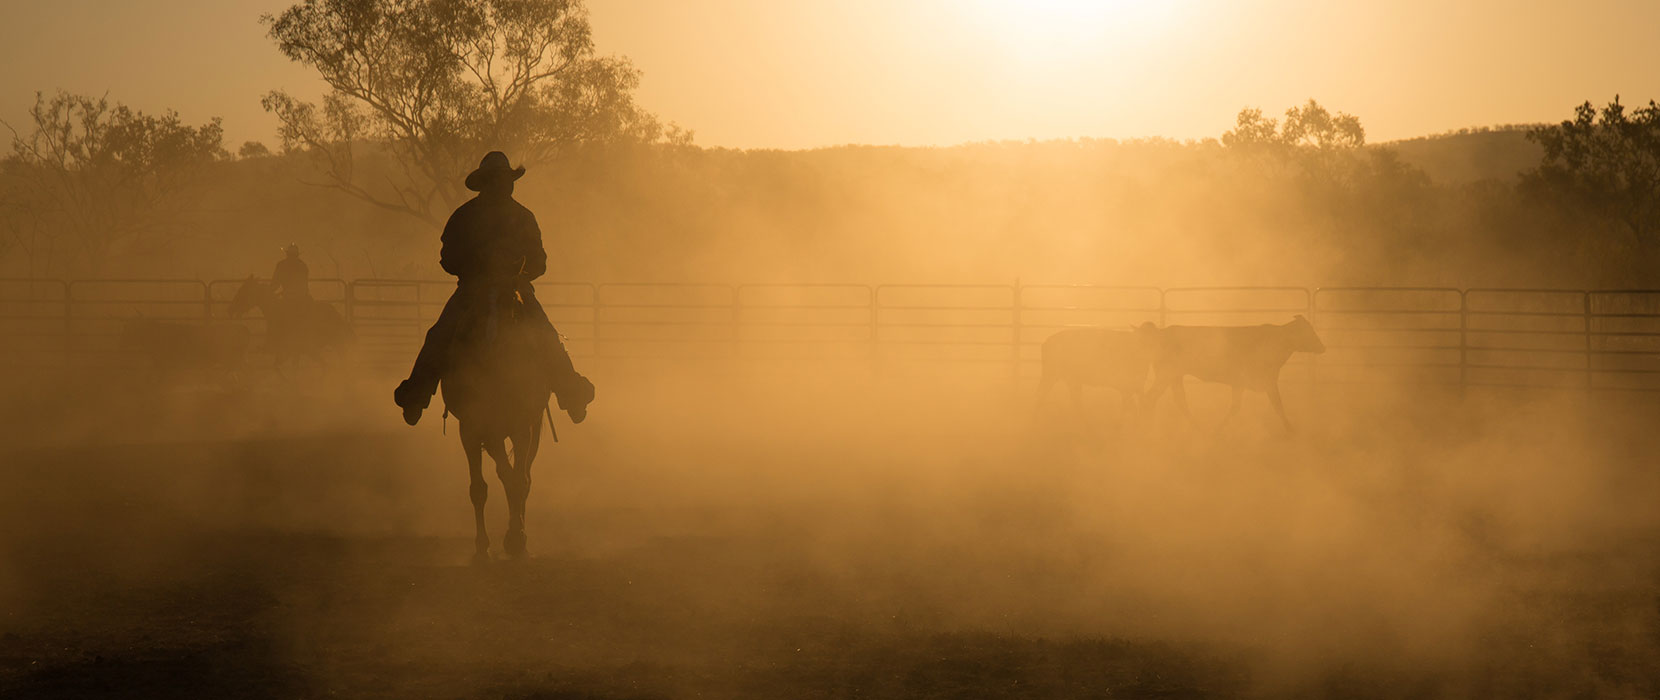 Dusty sunset with a cowboy on a horse mustering cattle.